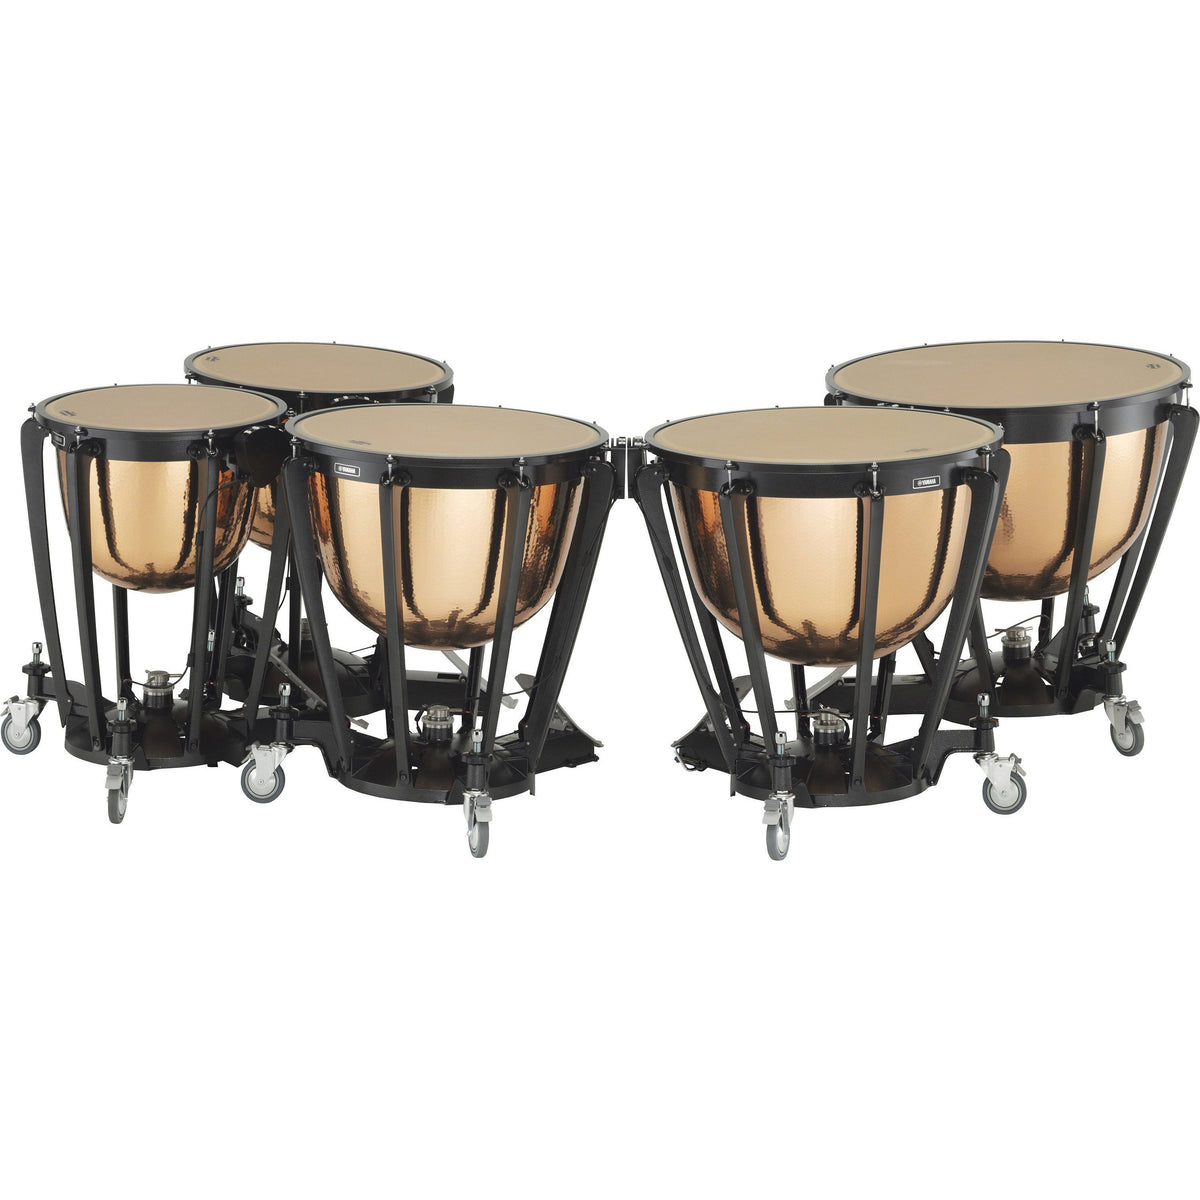 Yamaha - TP-7300R Series - Pedal Timpani with Hammered Copper Bowl-Percussion-Yamaha-Music Elements